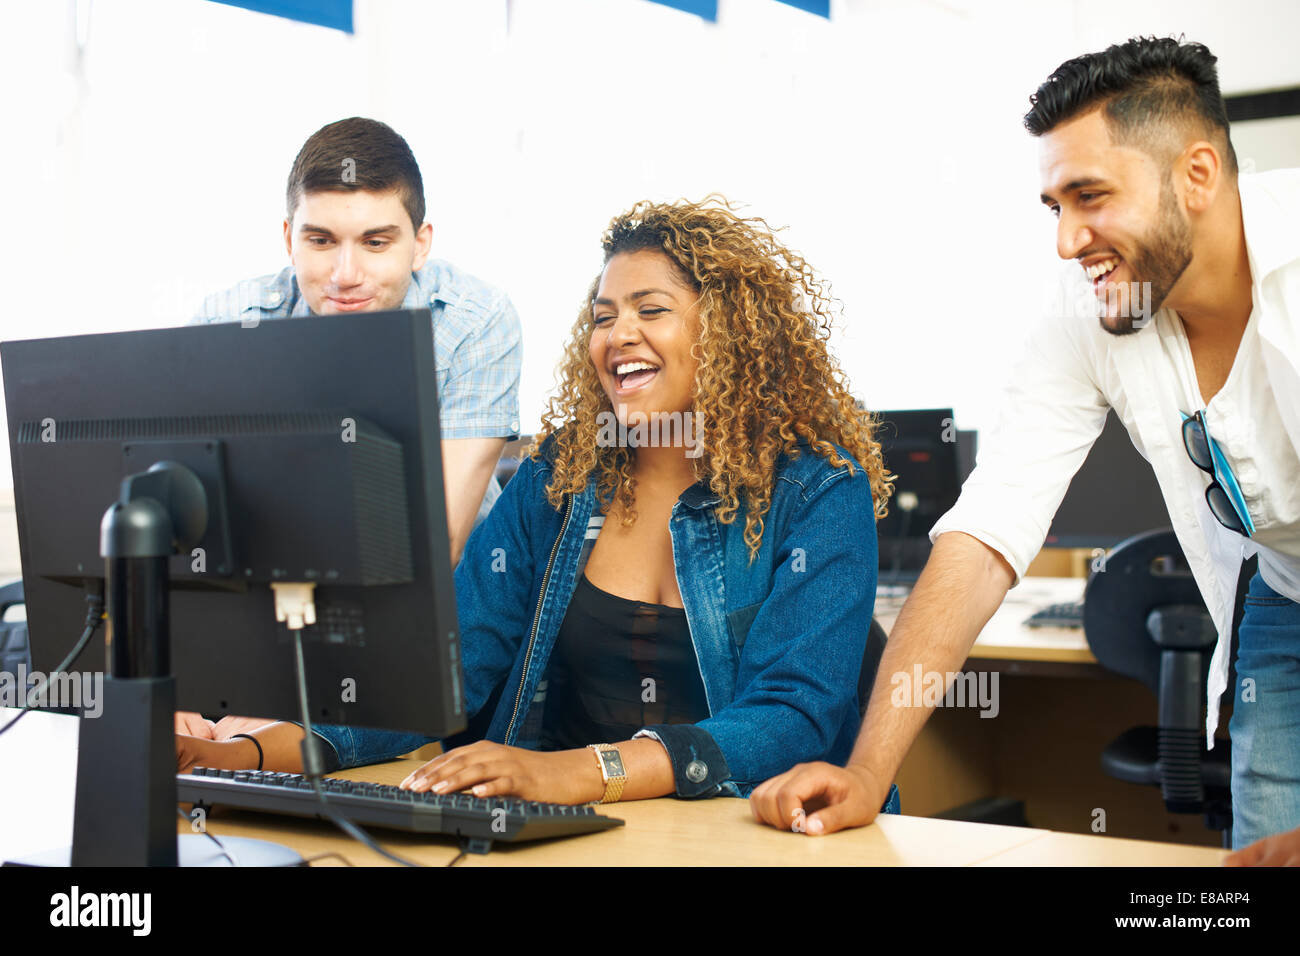 Three student friends laughing and looking at personal computer in classroom - Stock Image